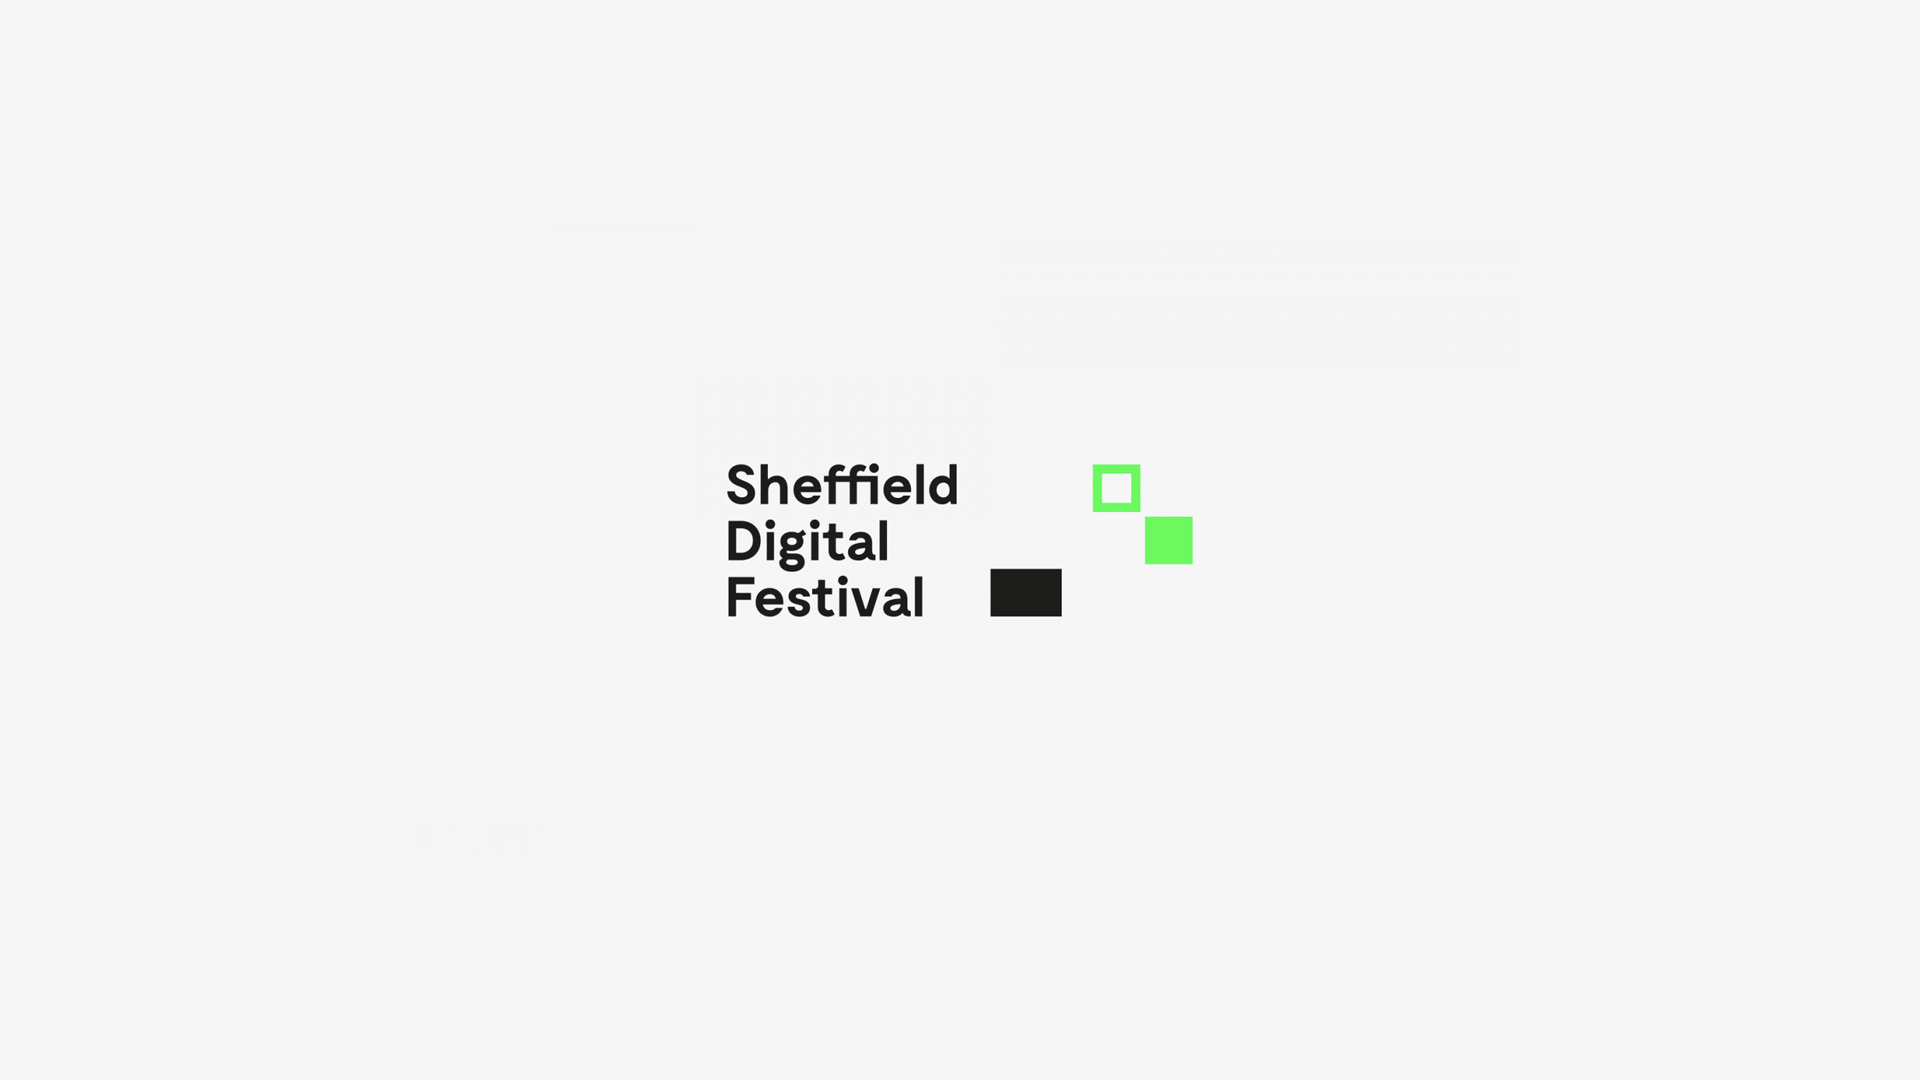 A Field Event - Sheffield Digital Festival